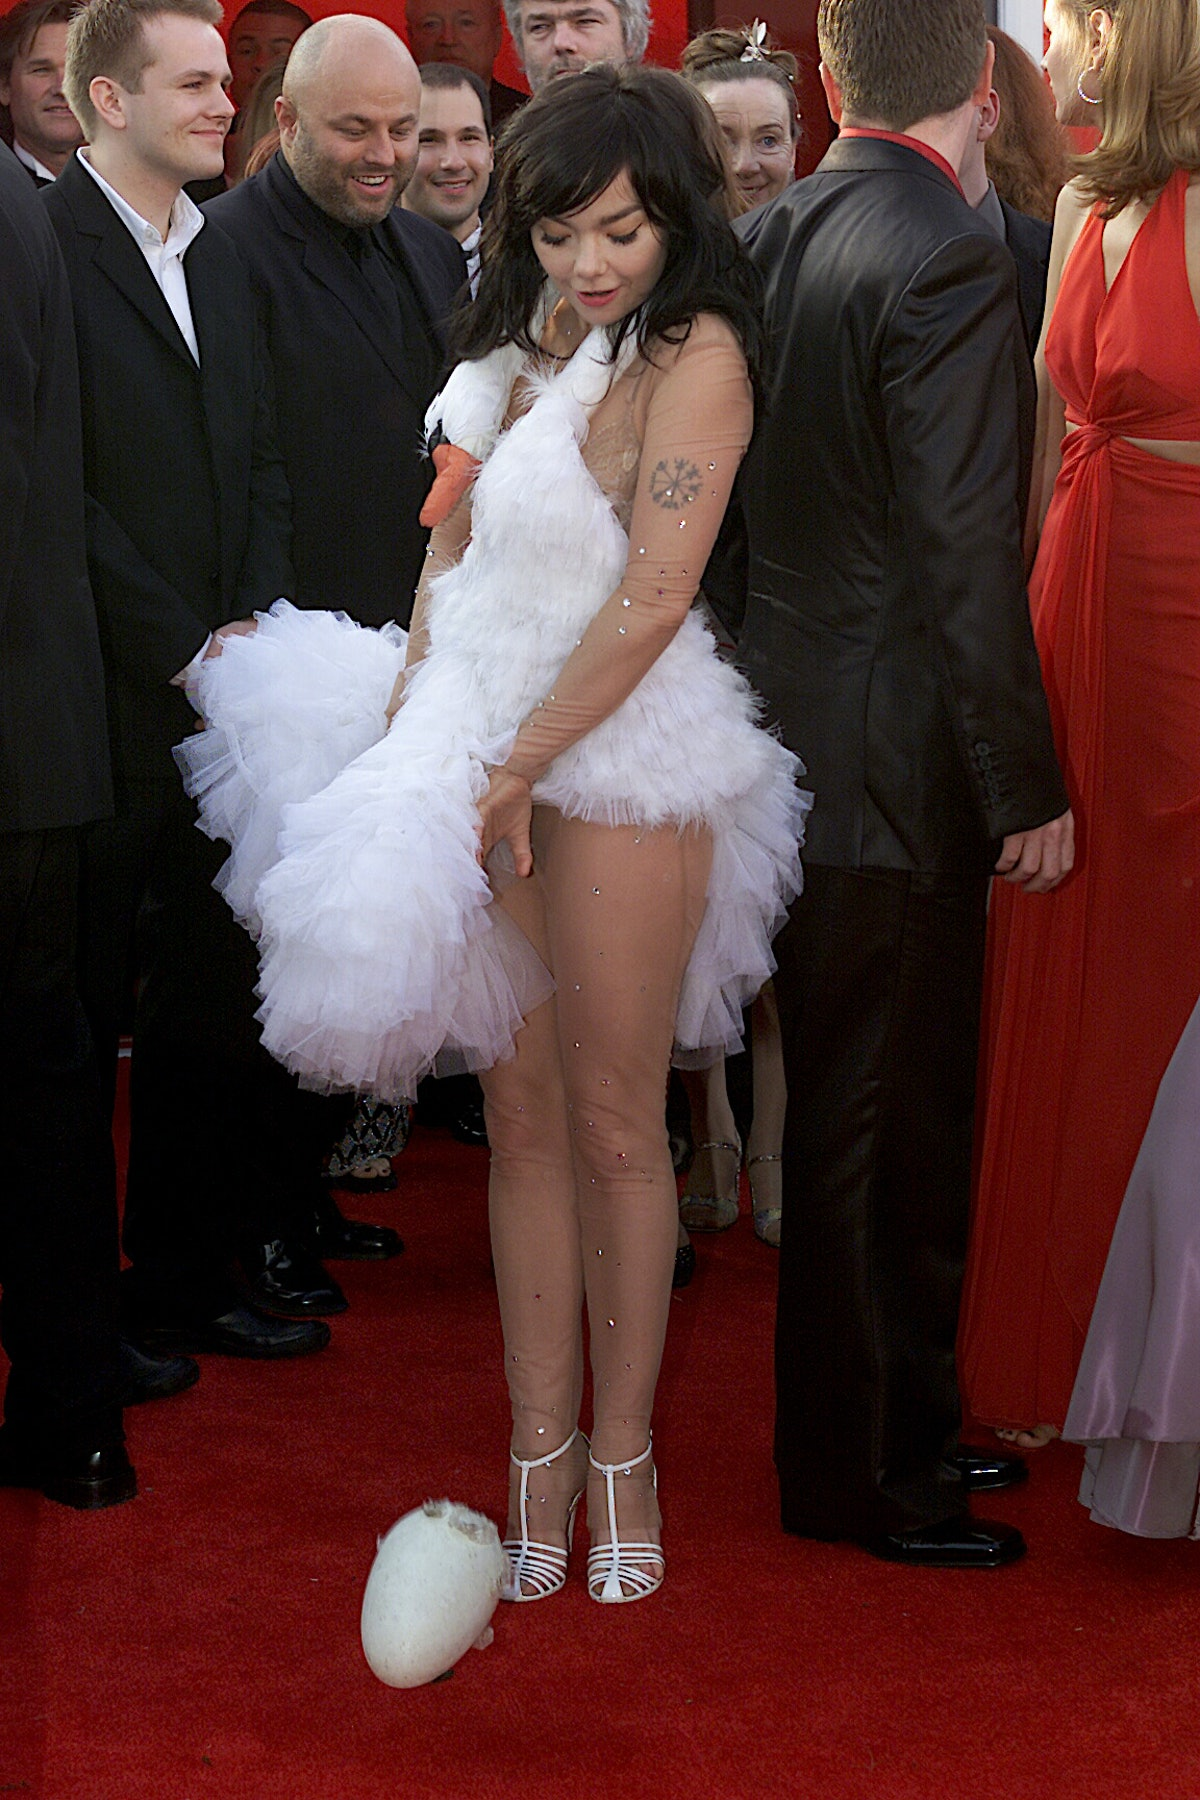 026678.0325.osc66.ws07 ?? Bjork at the 73rd Academy Awards at the Shrine Auditorium in Los Angeles o